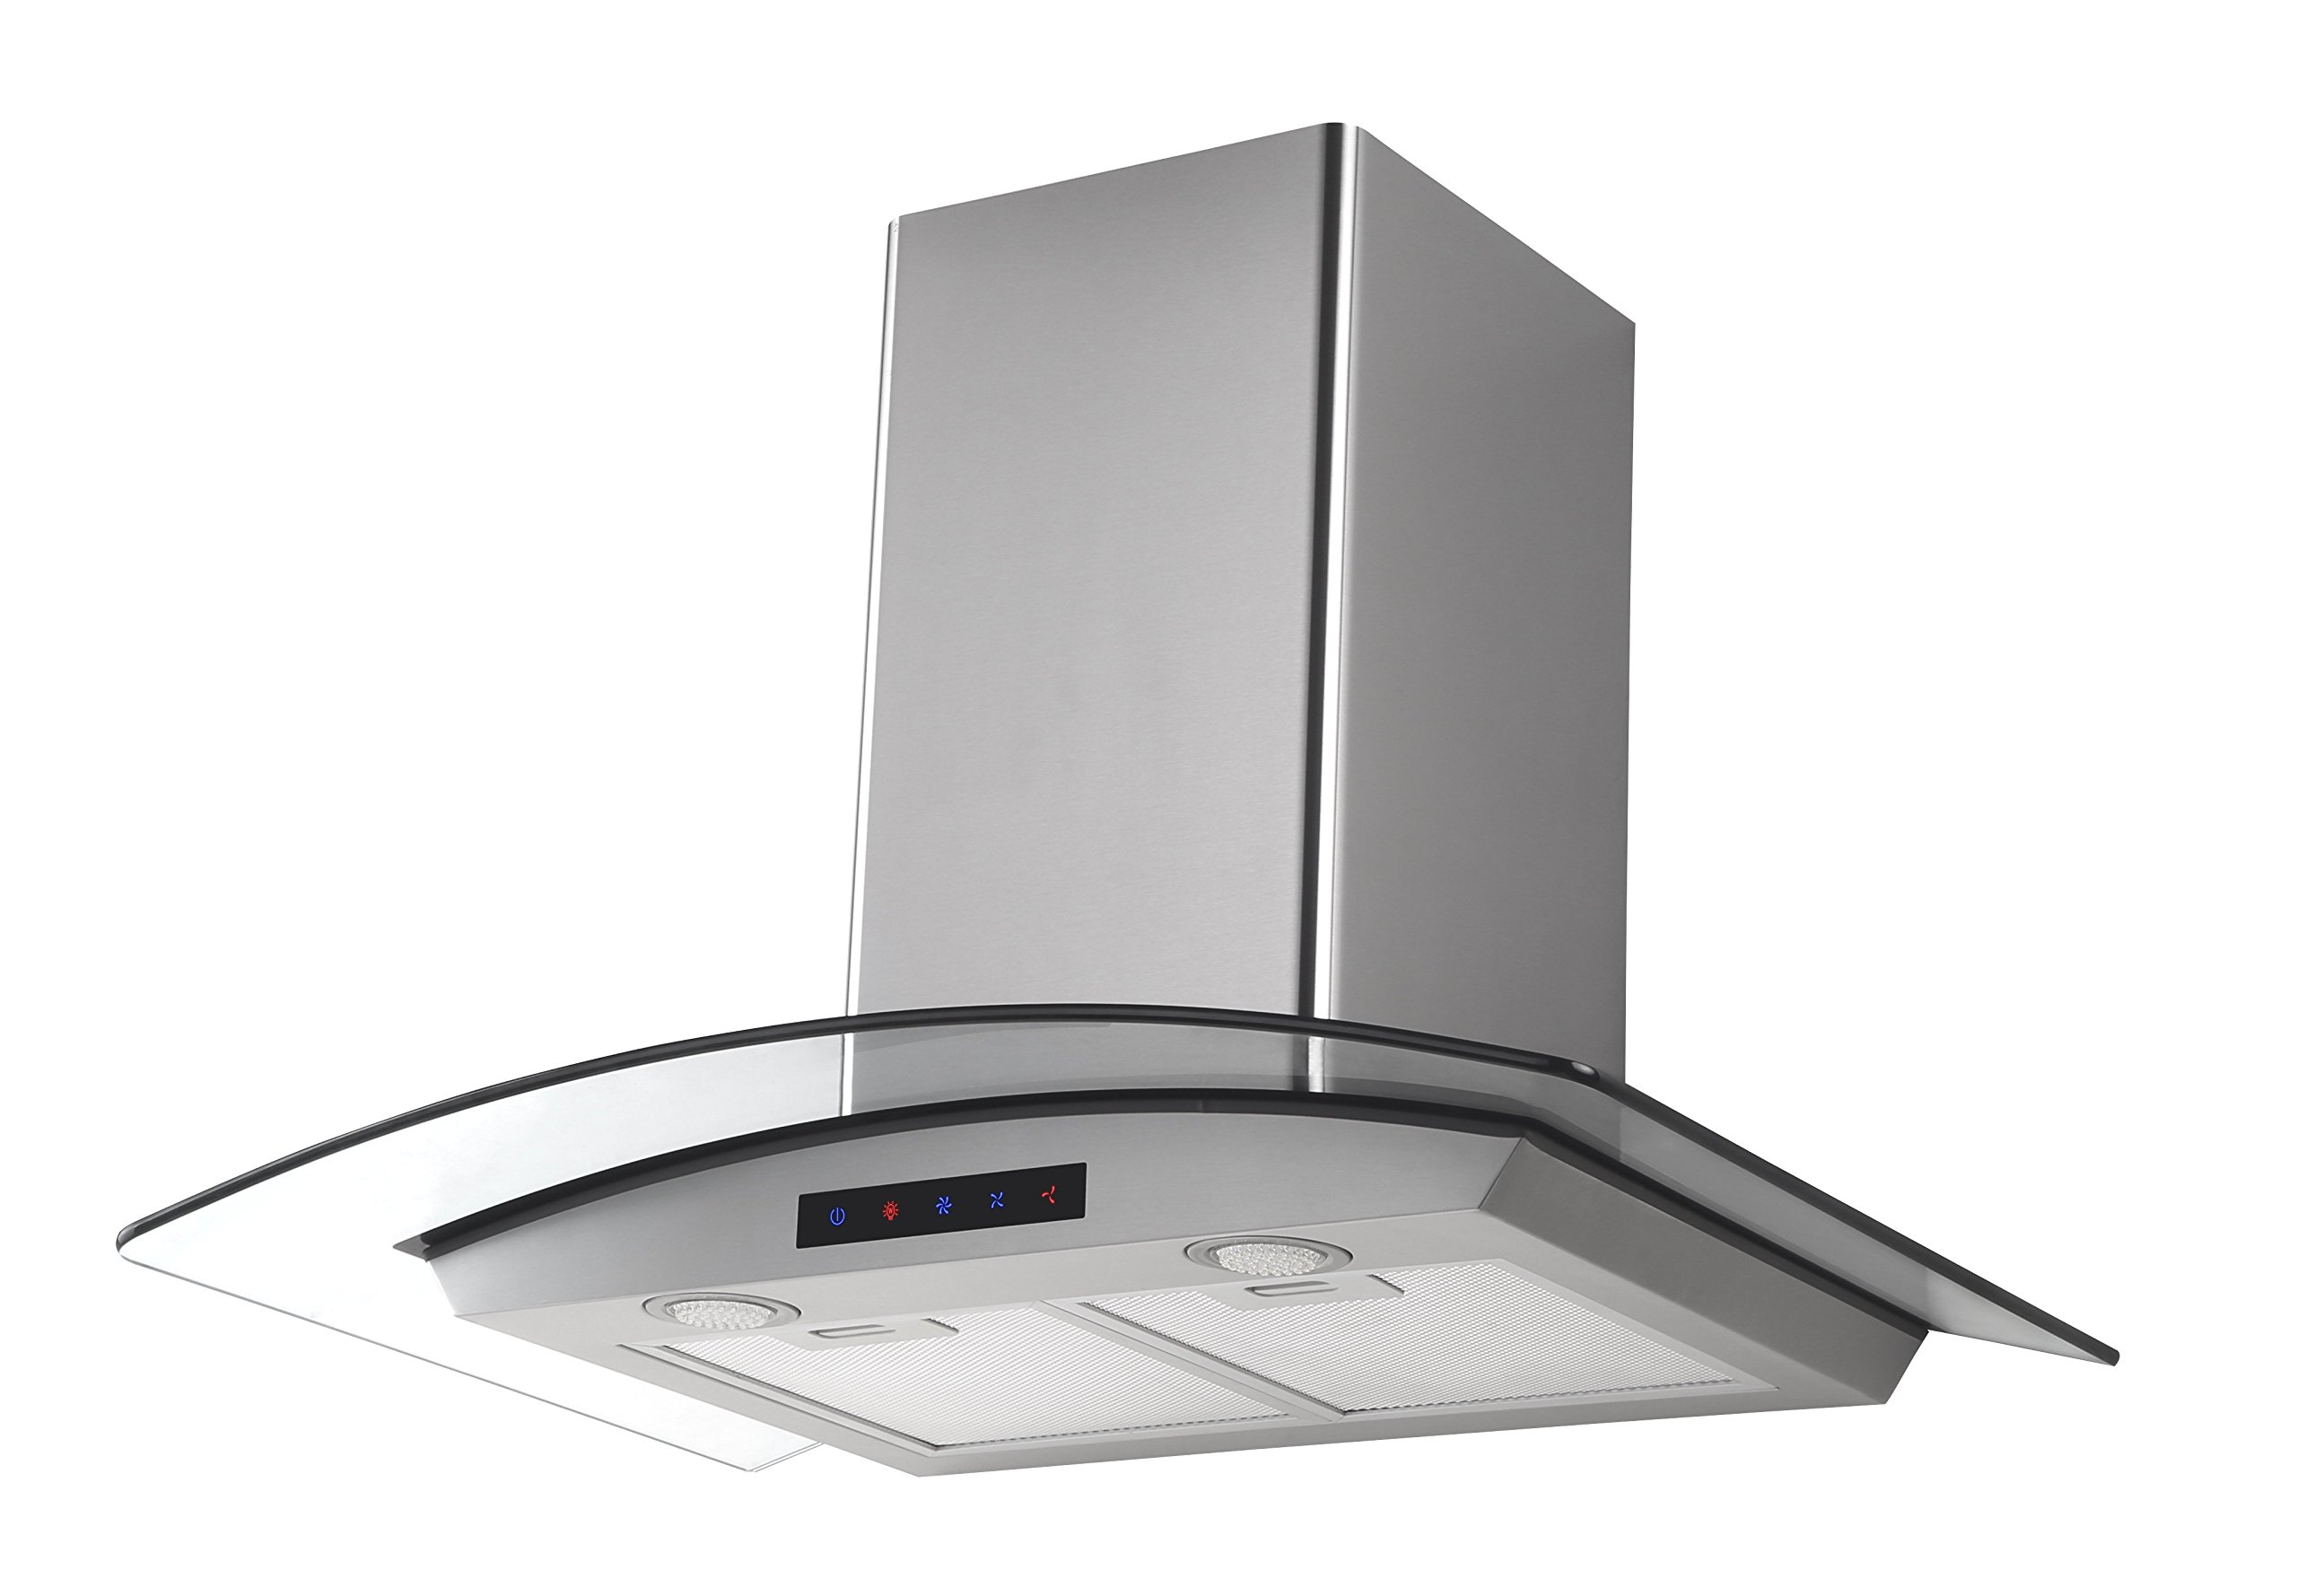 Kitchen Bath Collection HA75-LED Stainless Steel Wall-Mounted Kitchen Range Hood with Tempered Glass Canopy and Touch Screen Panel, 30''